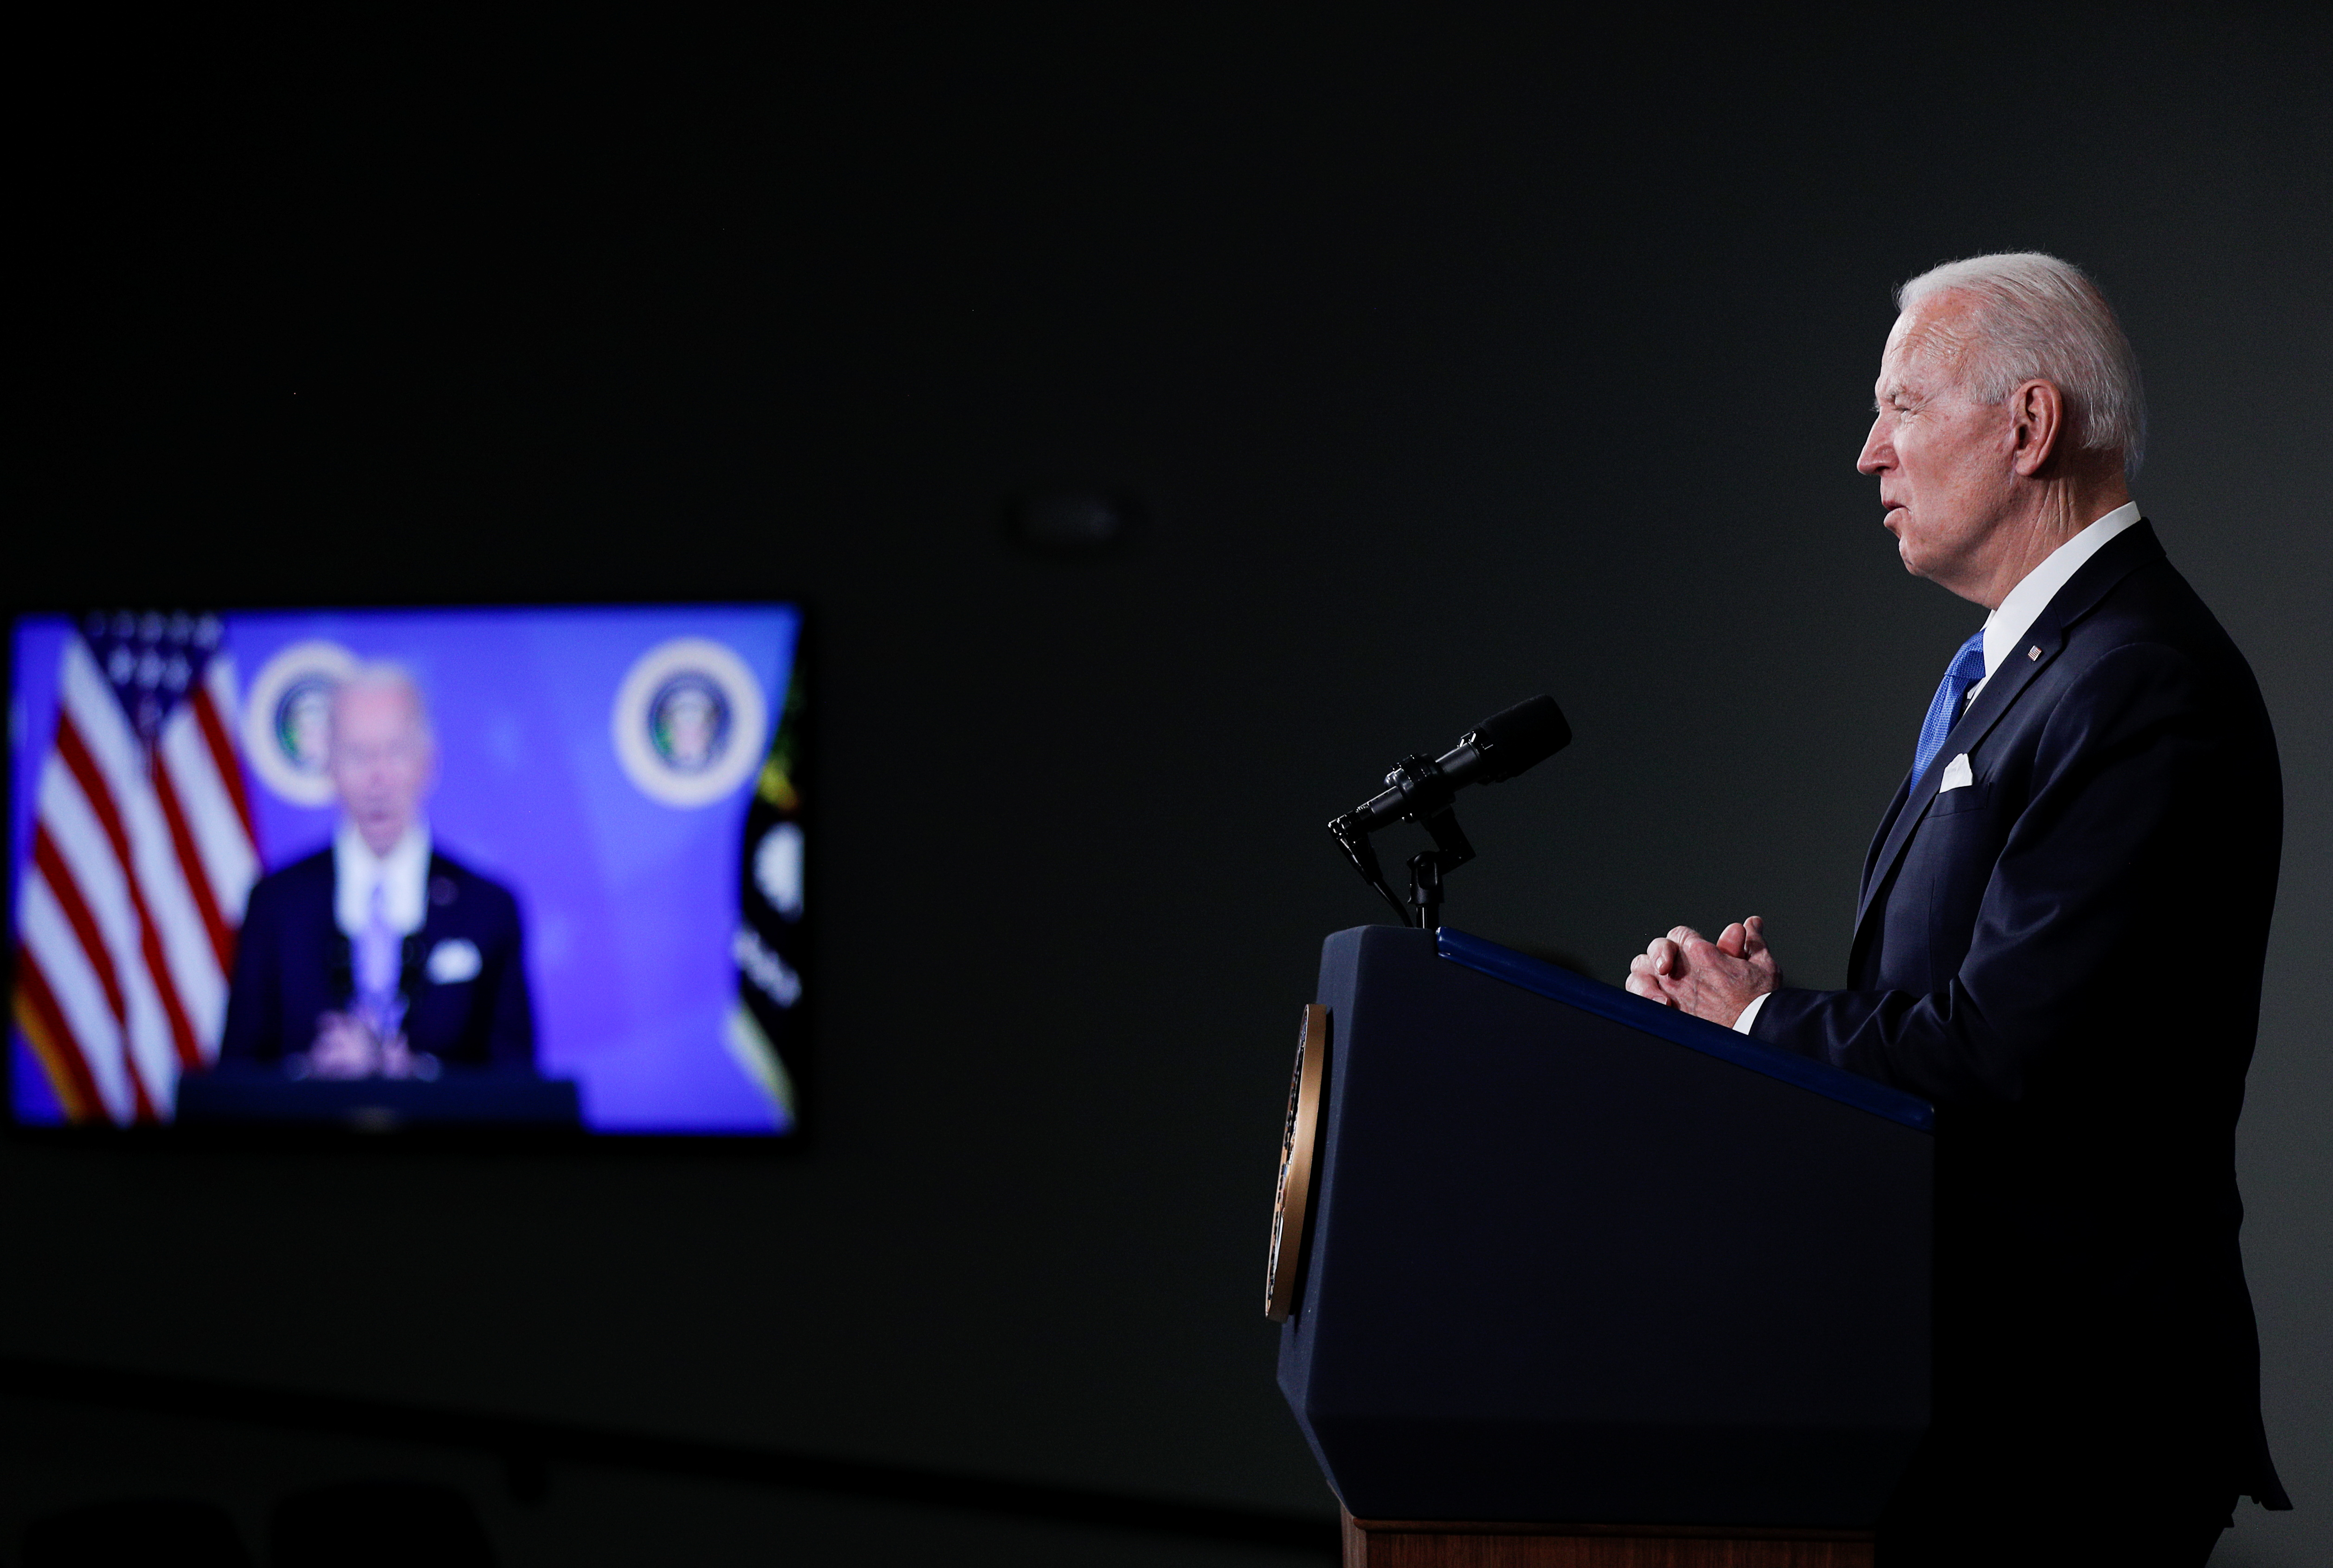 U.S. President Joe Biden announces administration plans to double its order of the single-shot Johnson & Johnson coronavirus vaccine, procuring an additional 100 million doses, during an event with Johnson & Johnson CEO Alex Gorsky and Merck CEO Kenneth Frazier in the South Court Auditorium at the White House in Washington, U.S., March 10, 2021. REUTERS/Tom Brenner